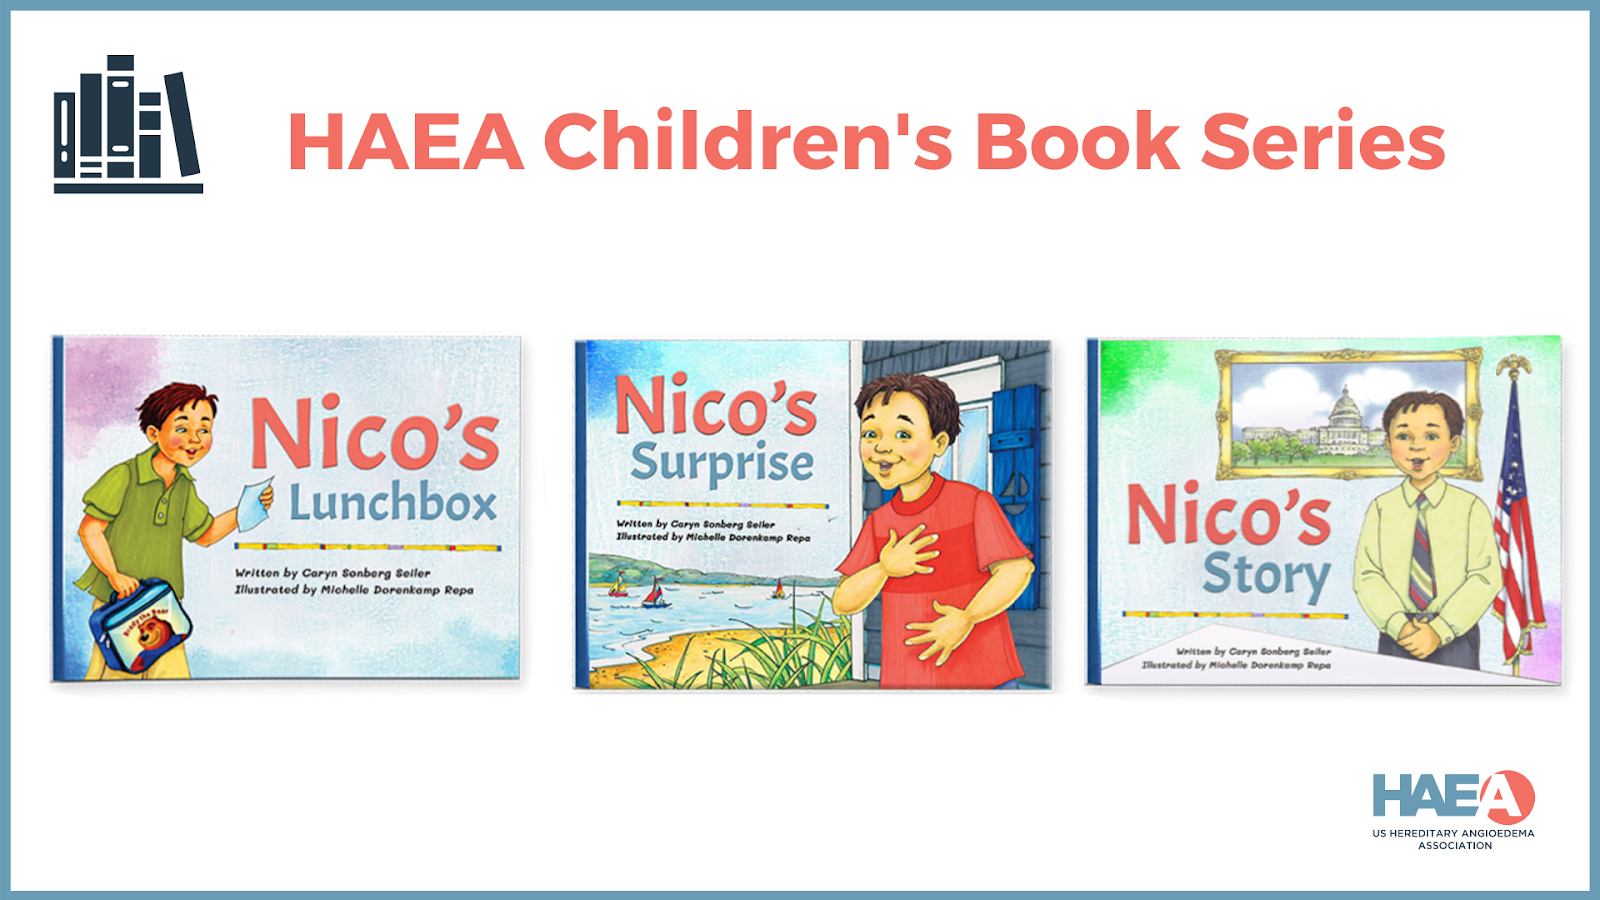 The third book in the HAEA Children's Book Series is now AVAILABLE!